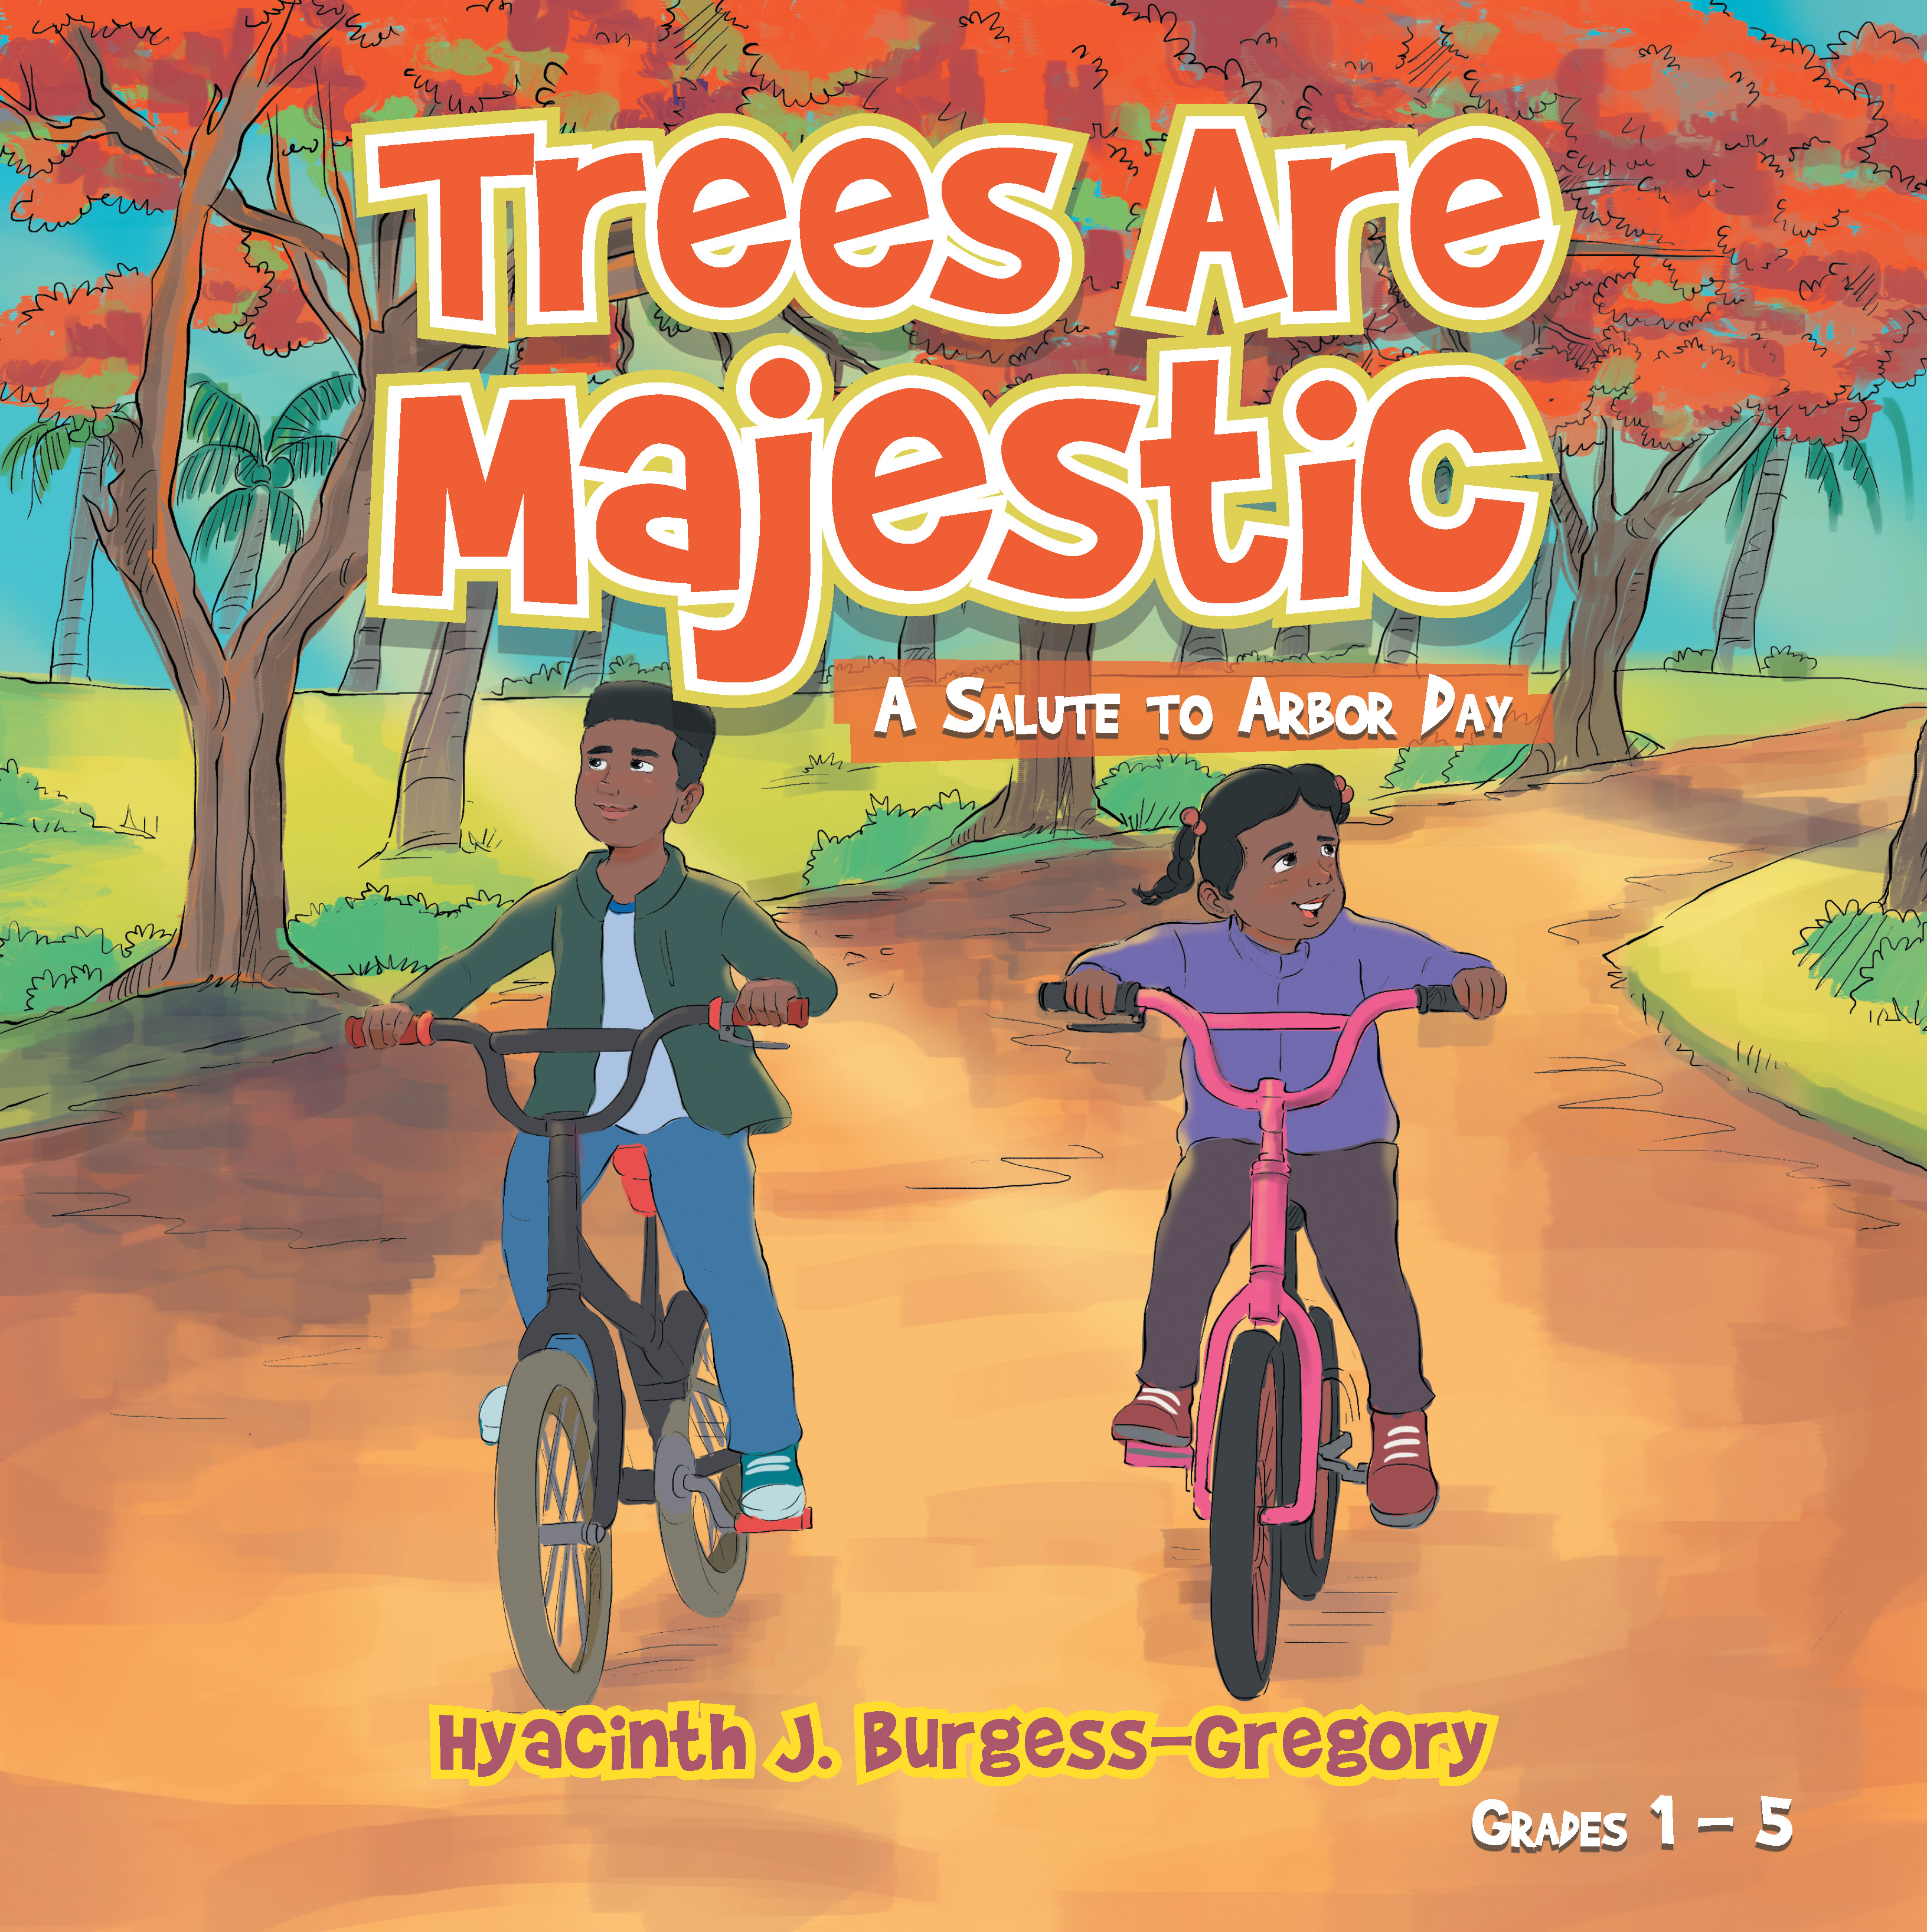 Trees Are Majestic: A Salute to Arbor Day